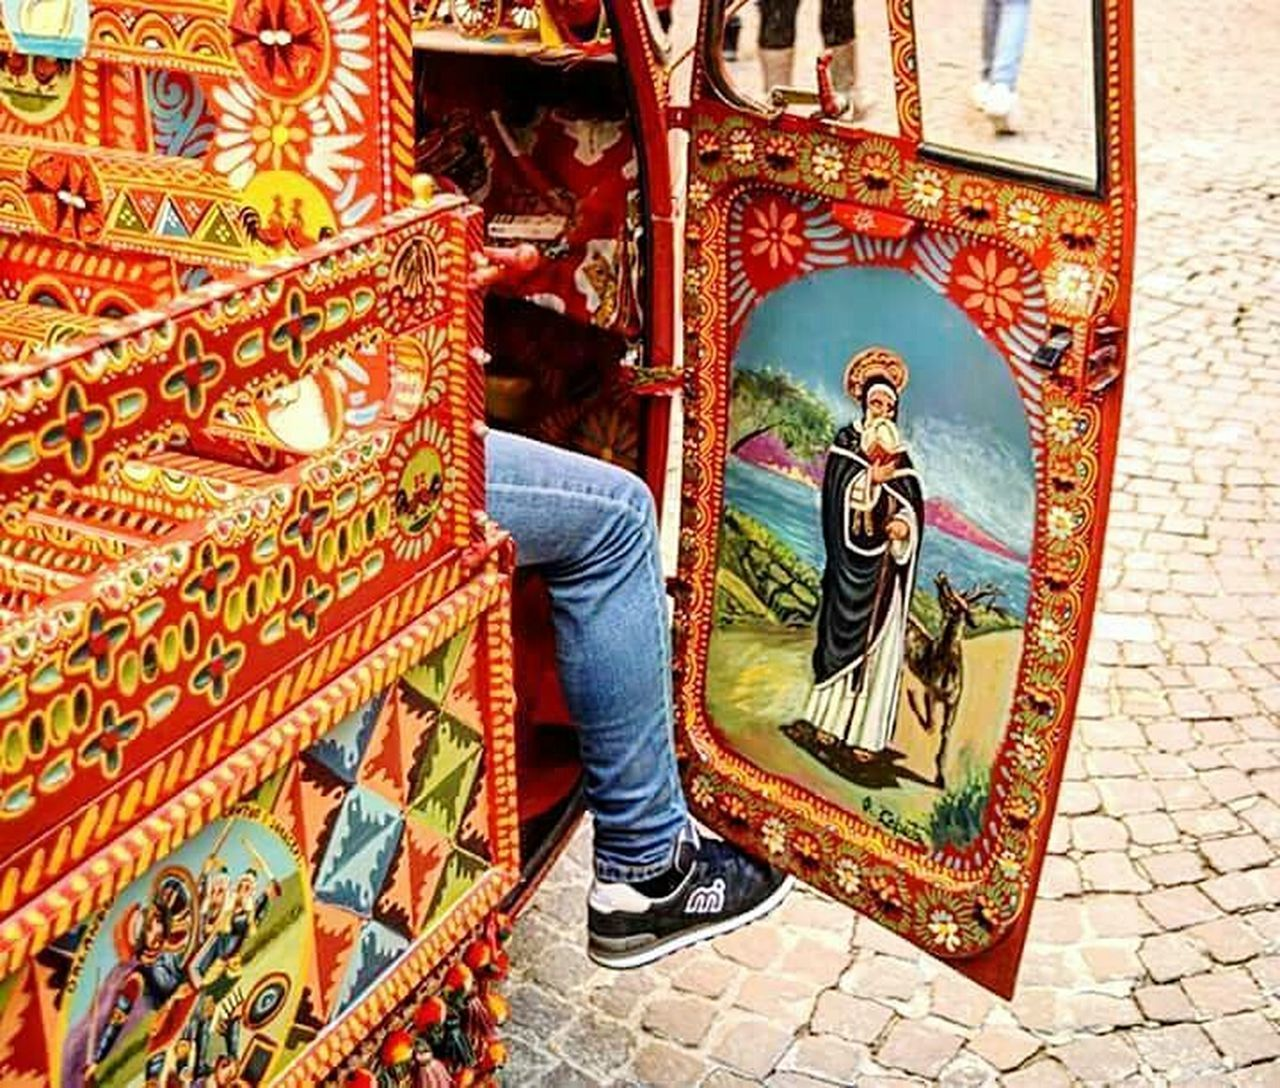 Festejando Festes I Tradicions Tradition Ape Adults Only Multi Colored Travel Agrigento Sweet Food Bowl Land Vehicle One Man Only Low Angle View Architecture People Prague Czech Republic Chair One Person Travel Destinations Adults Only Adult Day Outdoors Architecture Statue